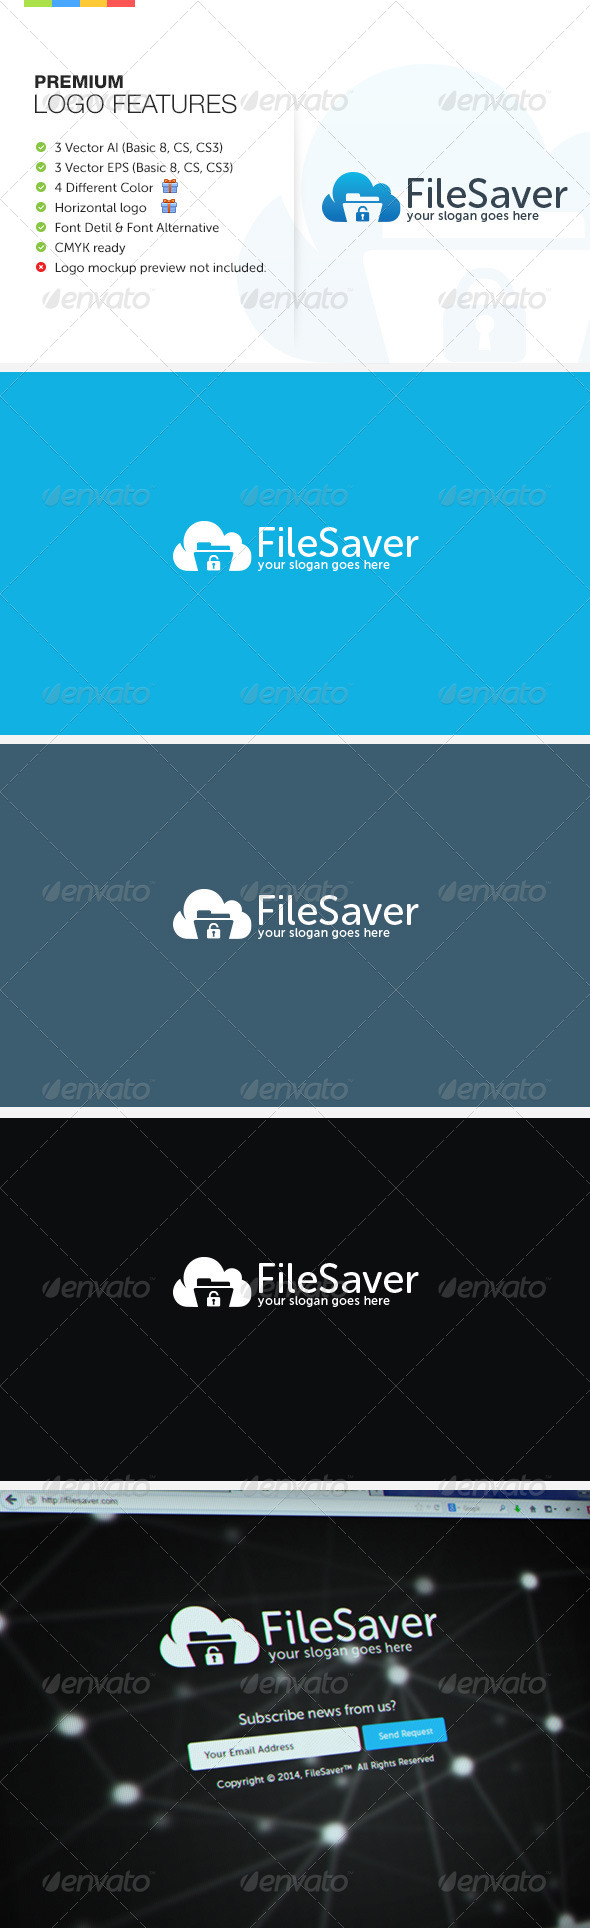 GraphicRiver File Saver Logo 7376469